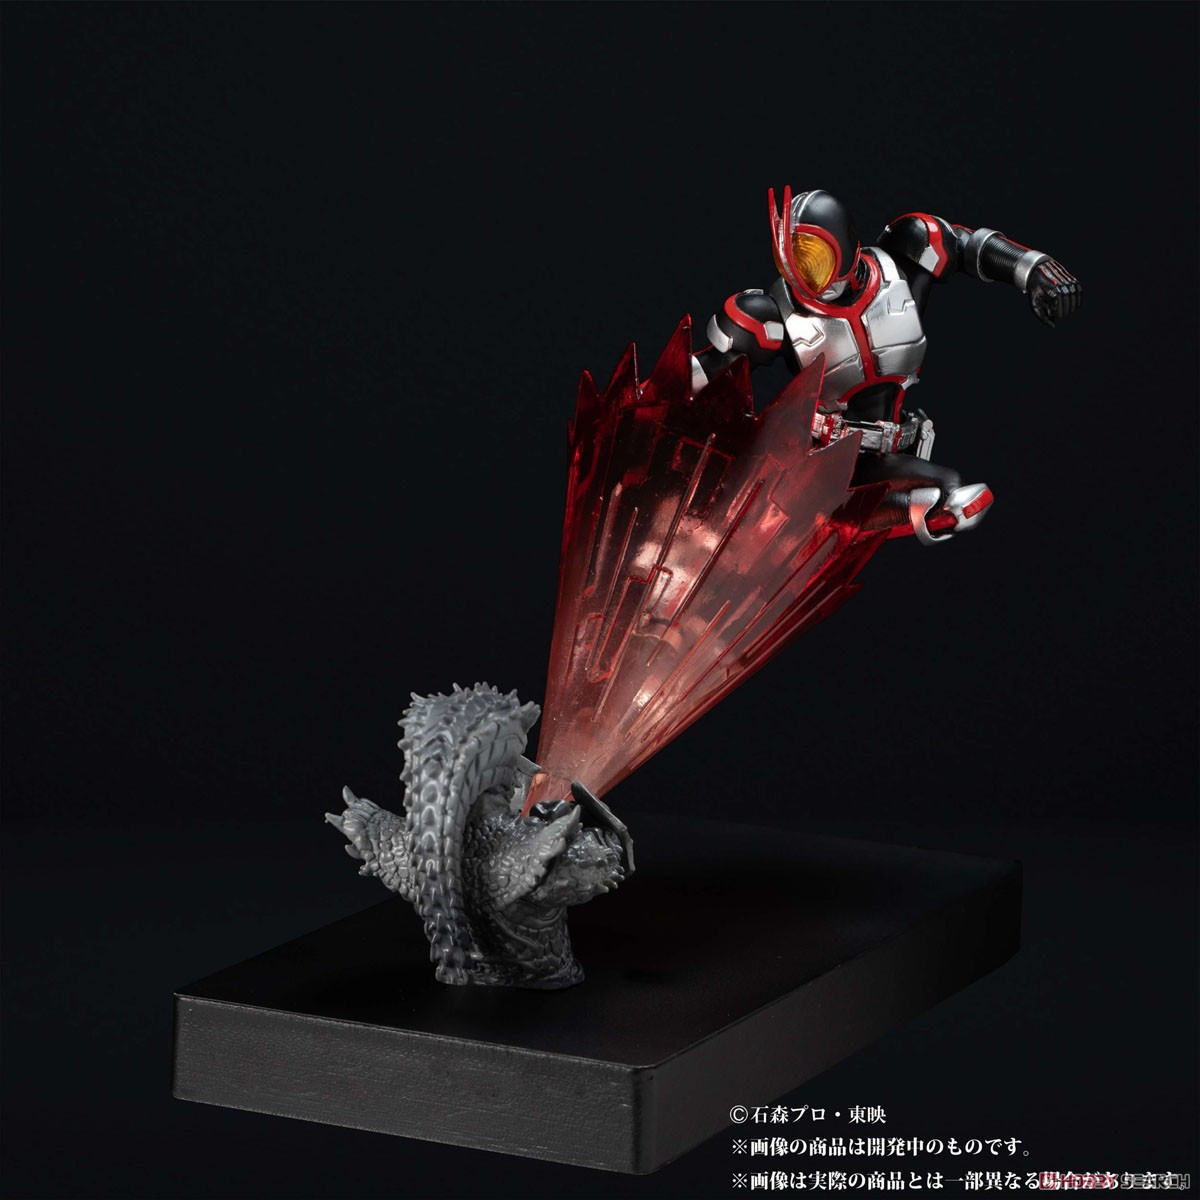 Glow In The Dark『仮面ライダーファイズ』仮面ライダー555 完成品フィギュア-001